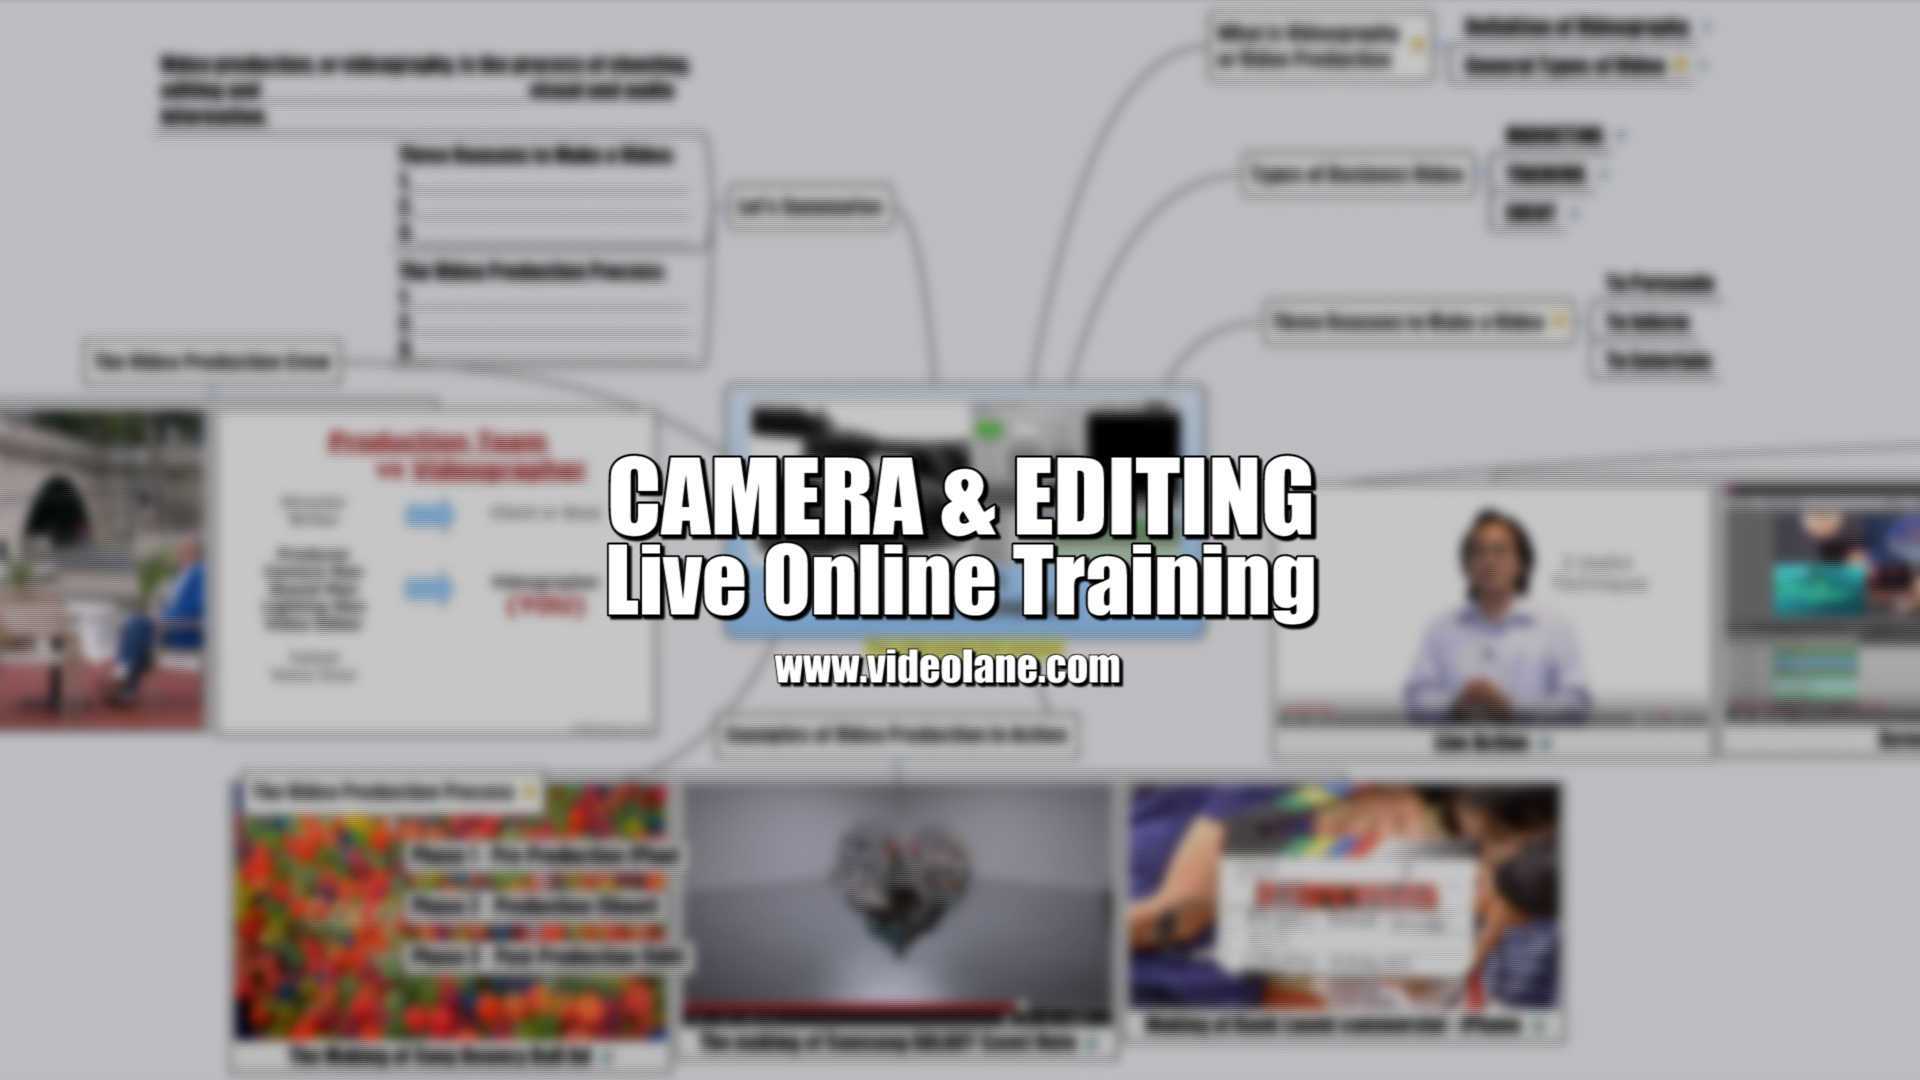 Camera and Editing Online Training